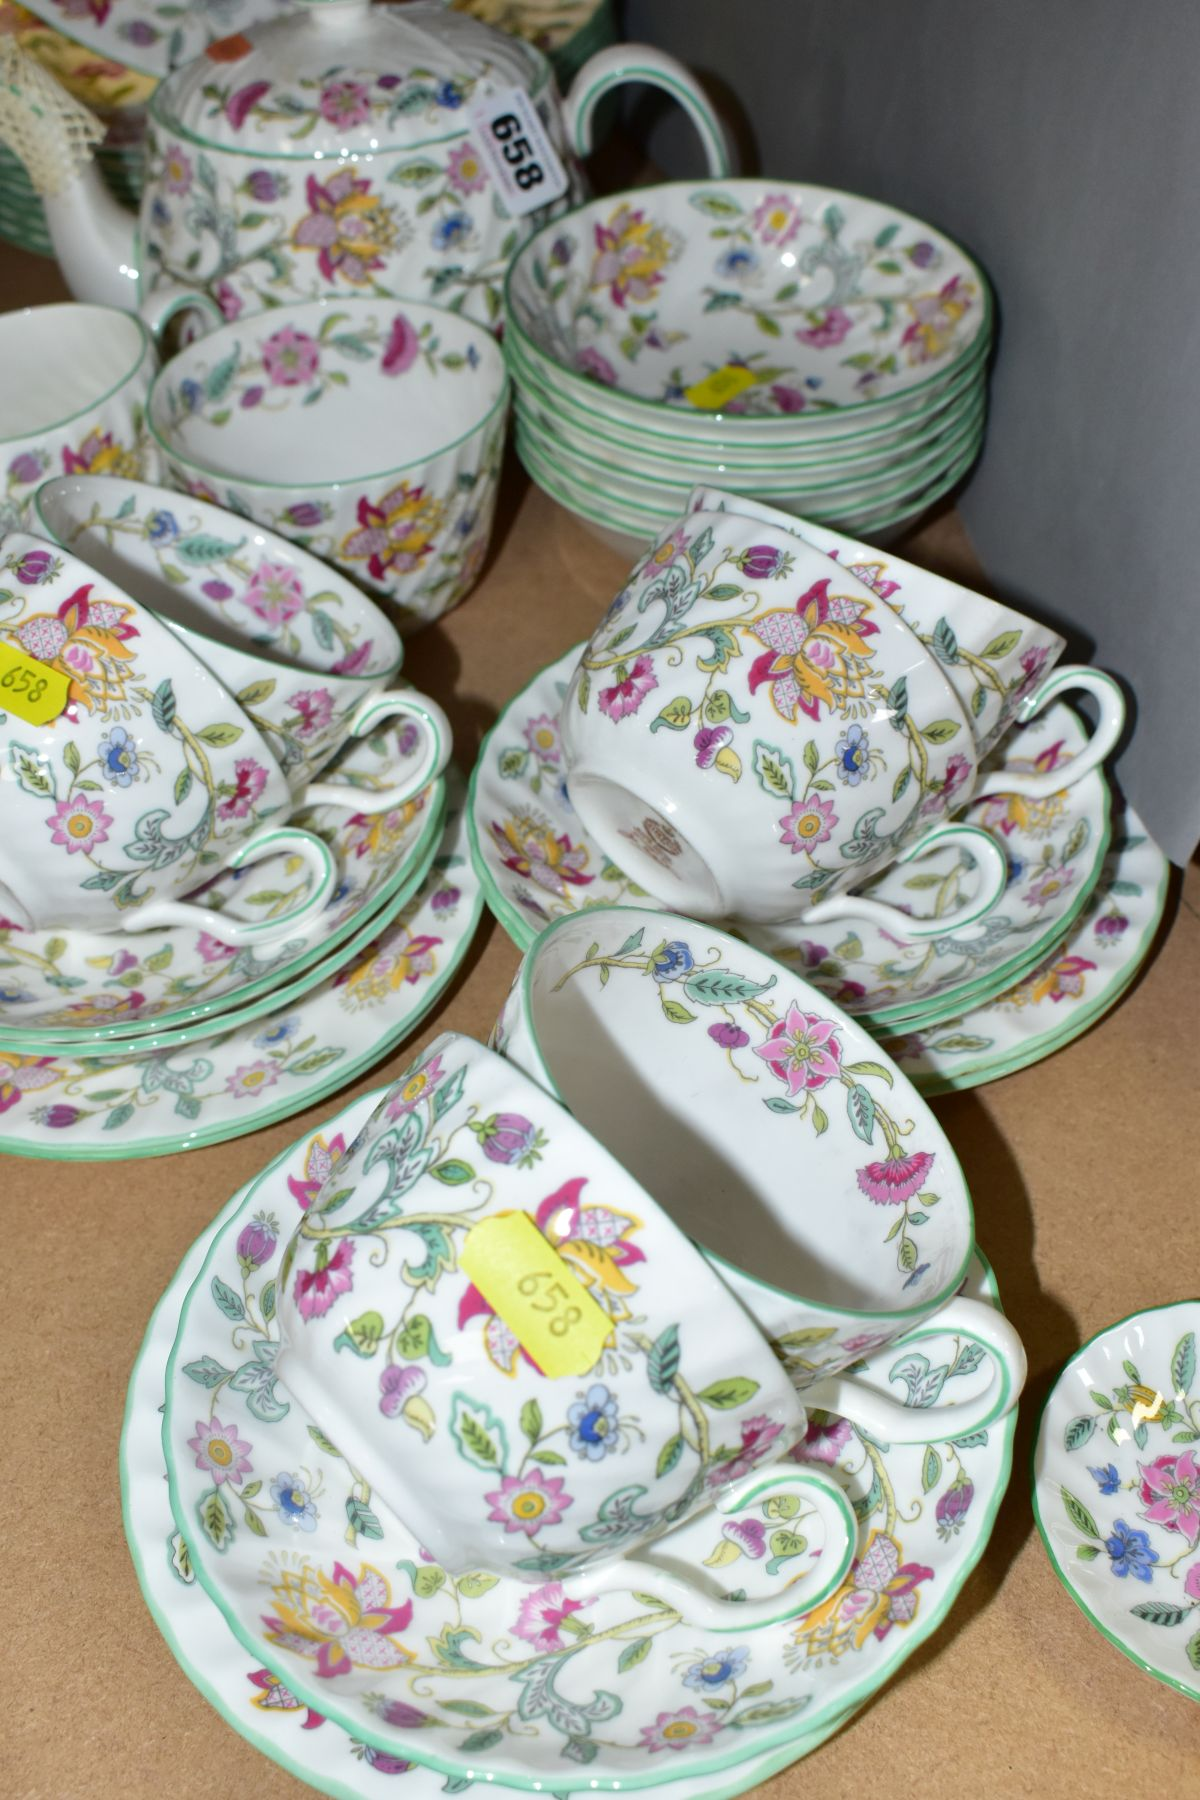 A MINTON 'HADDON HALL' PATTERN PART DINNER SERVICE, ETC, comprising teapot and cover, milk jug, - Image 5 of 6